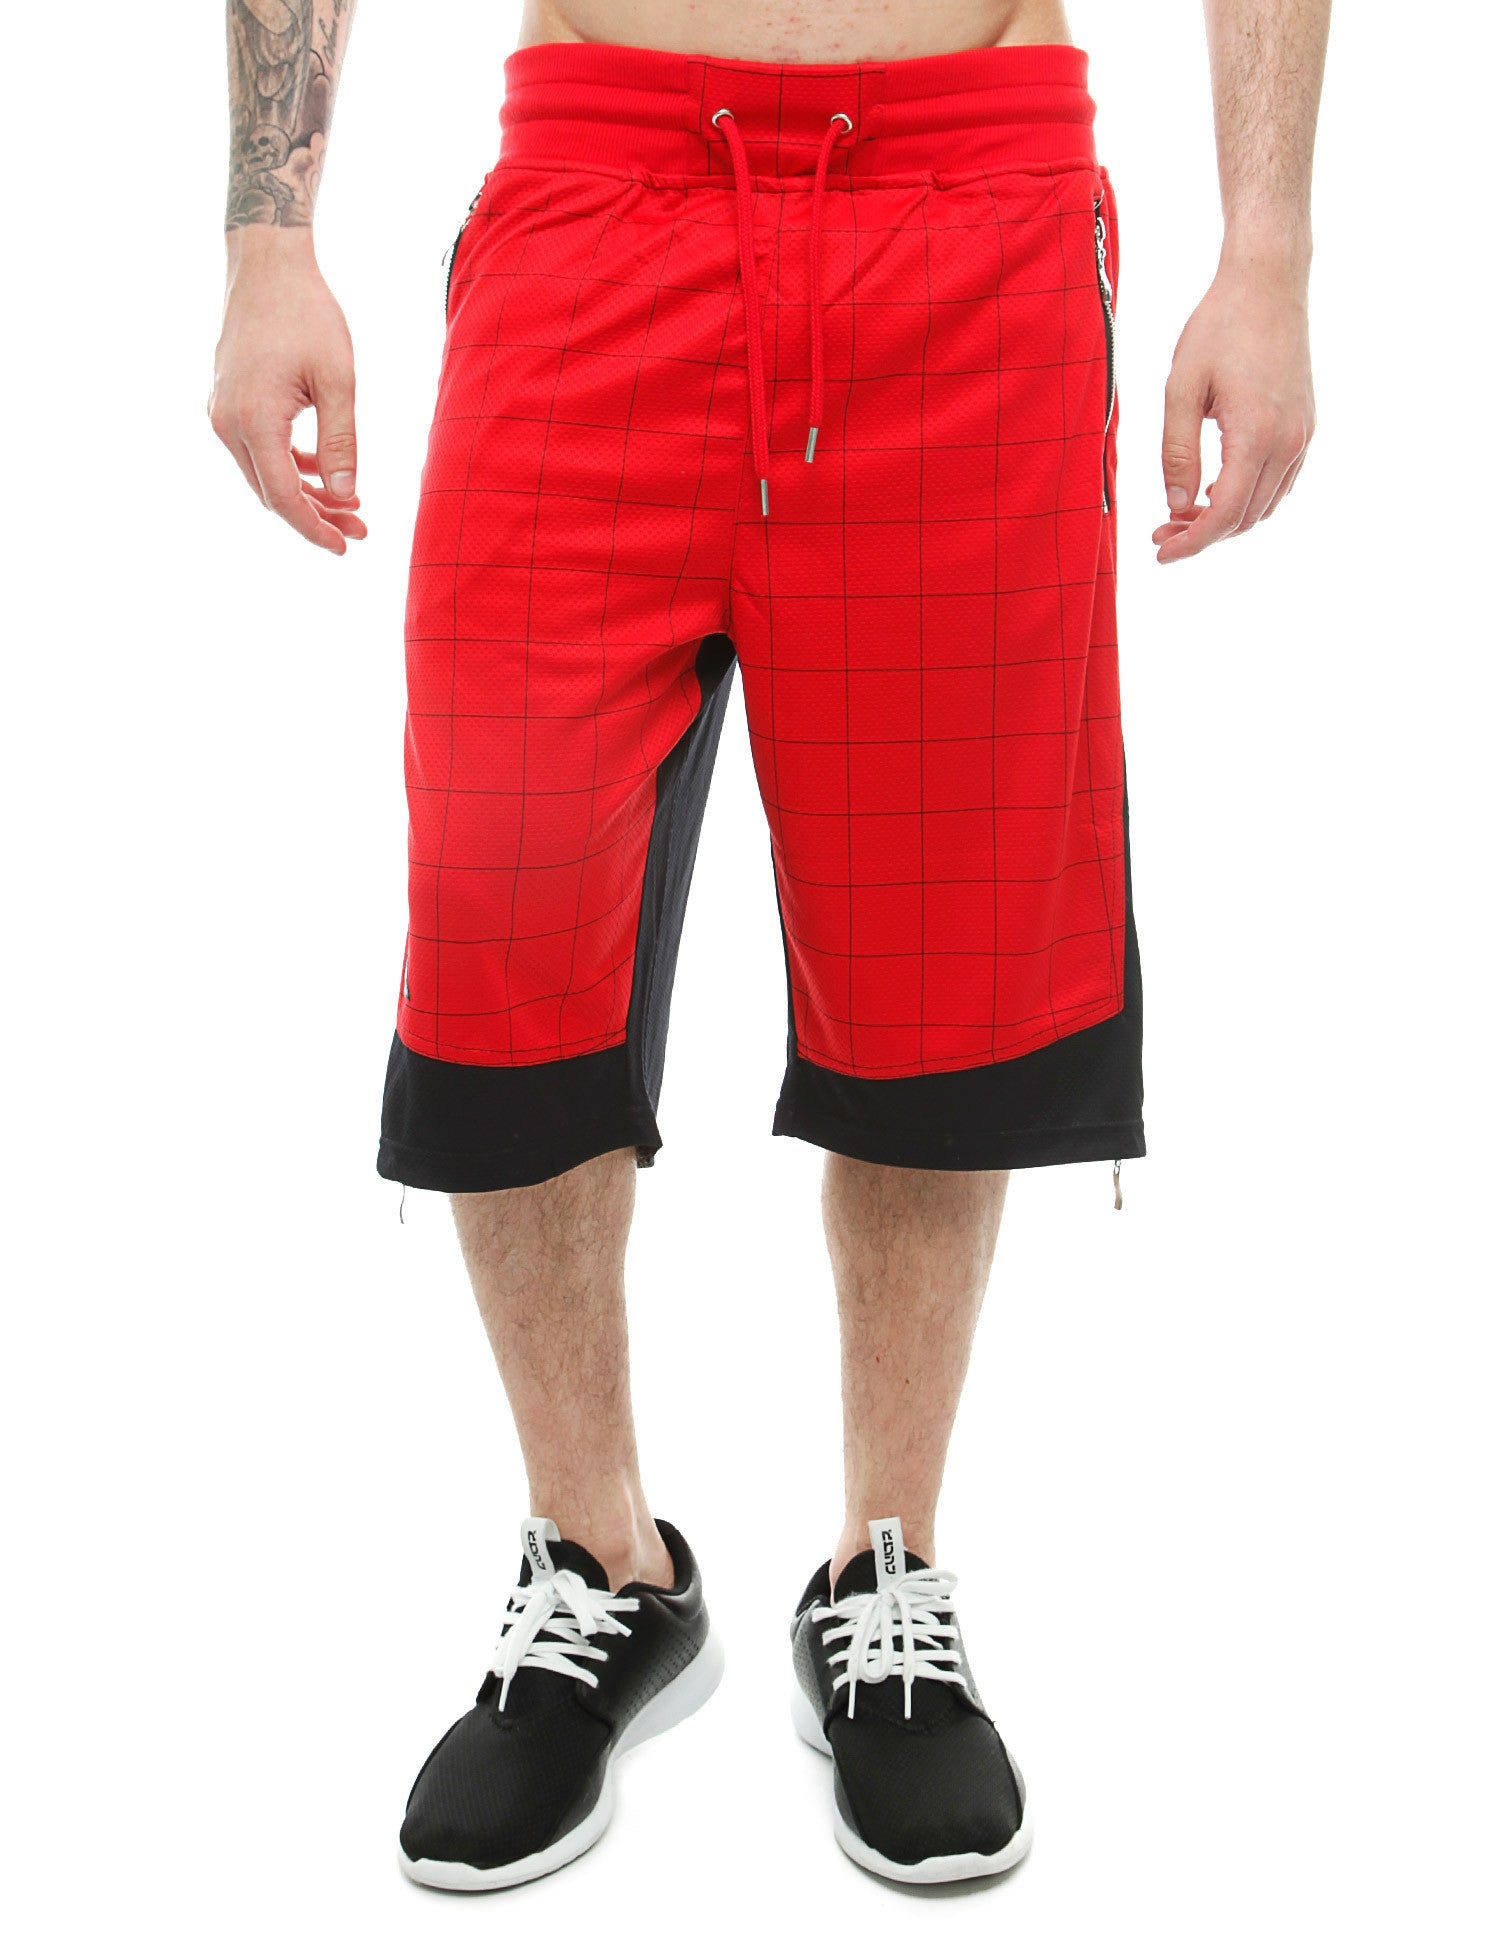 Imperious Mesh Color Block Shorts Red